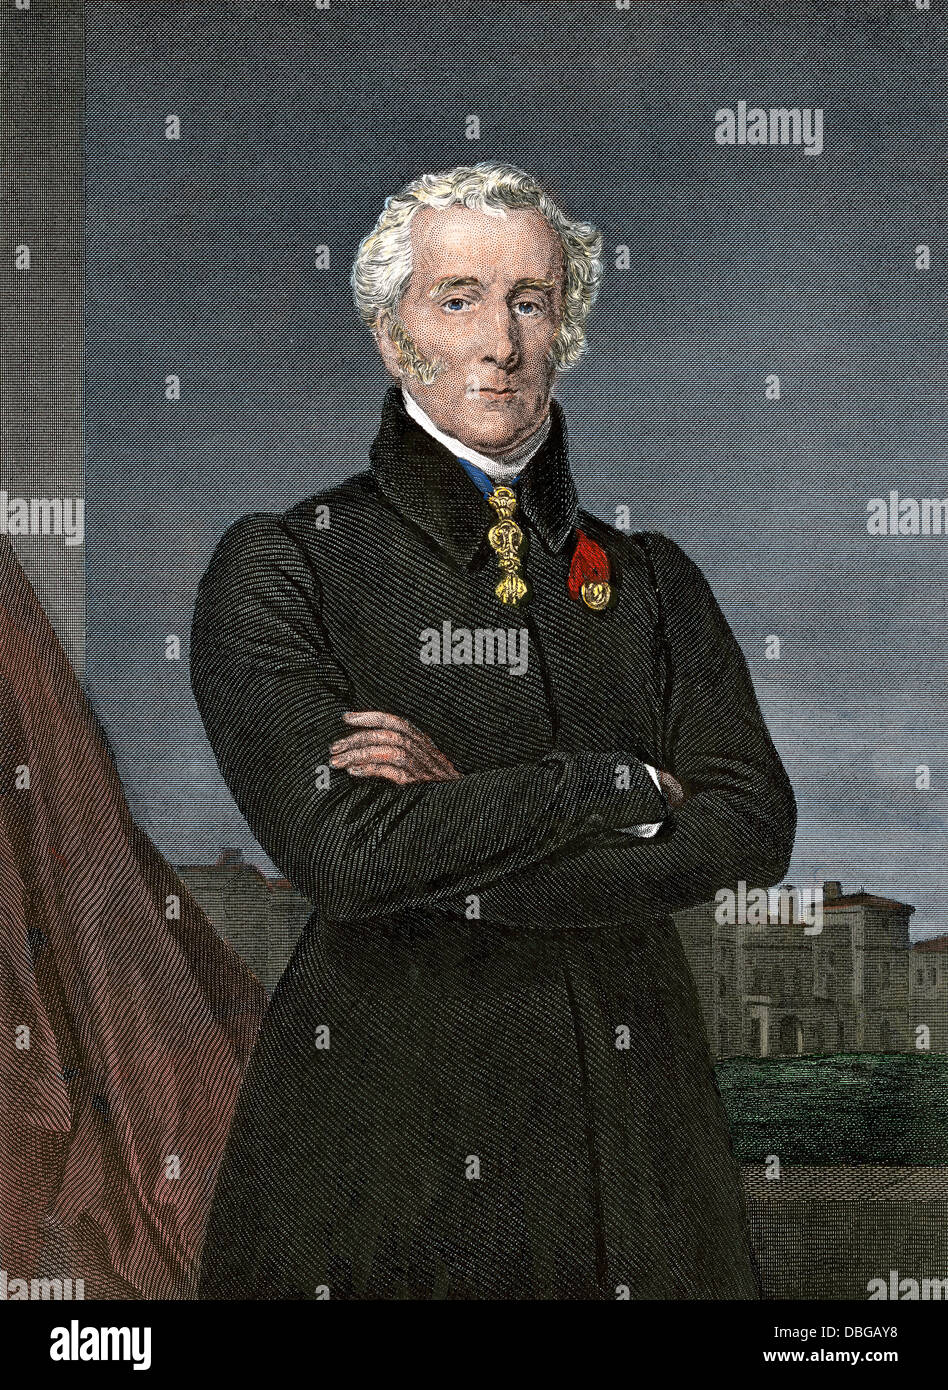 Arthur Wellesley, Duke of Wellington, who defeated Napoleon at Waterloo. Hand-colored steel engraving - Stock Image